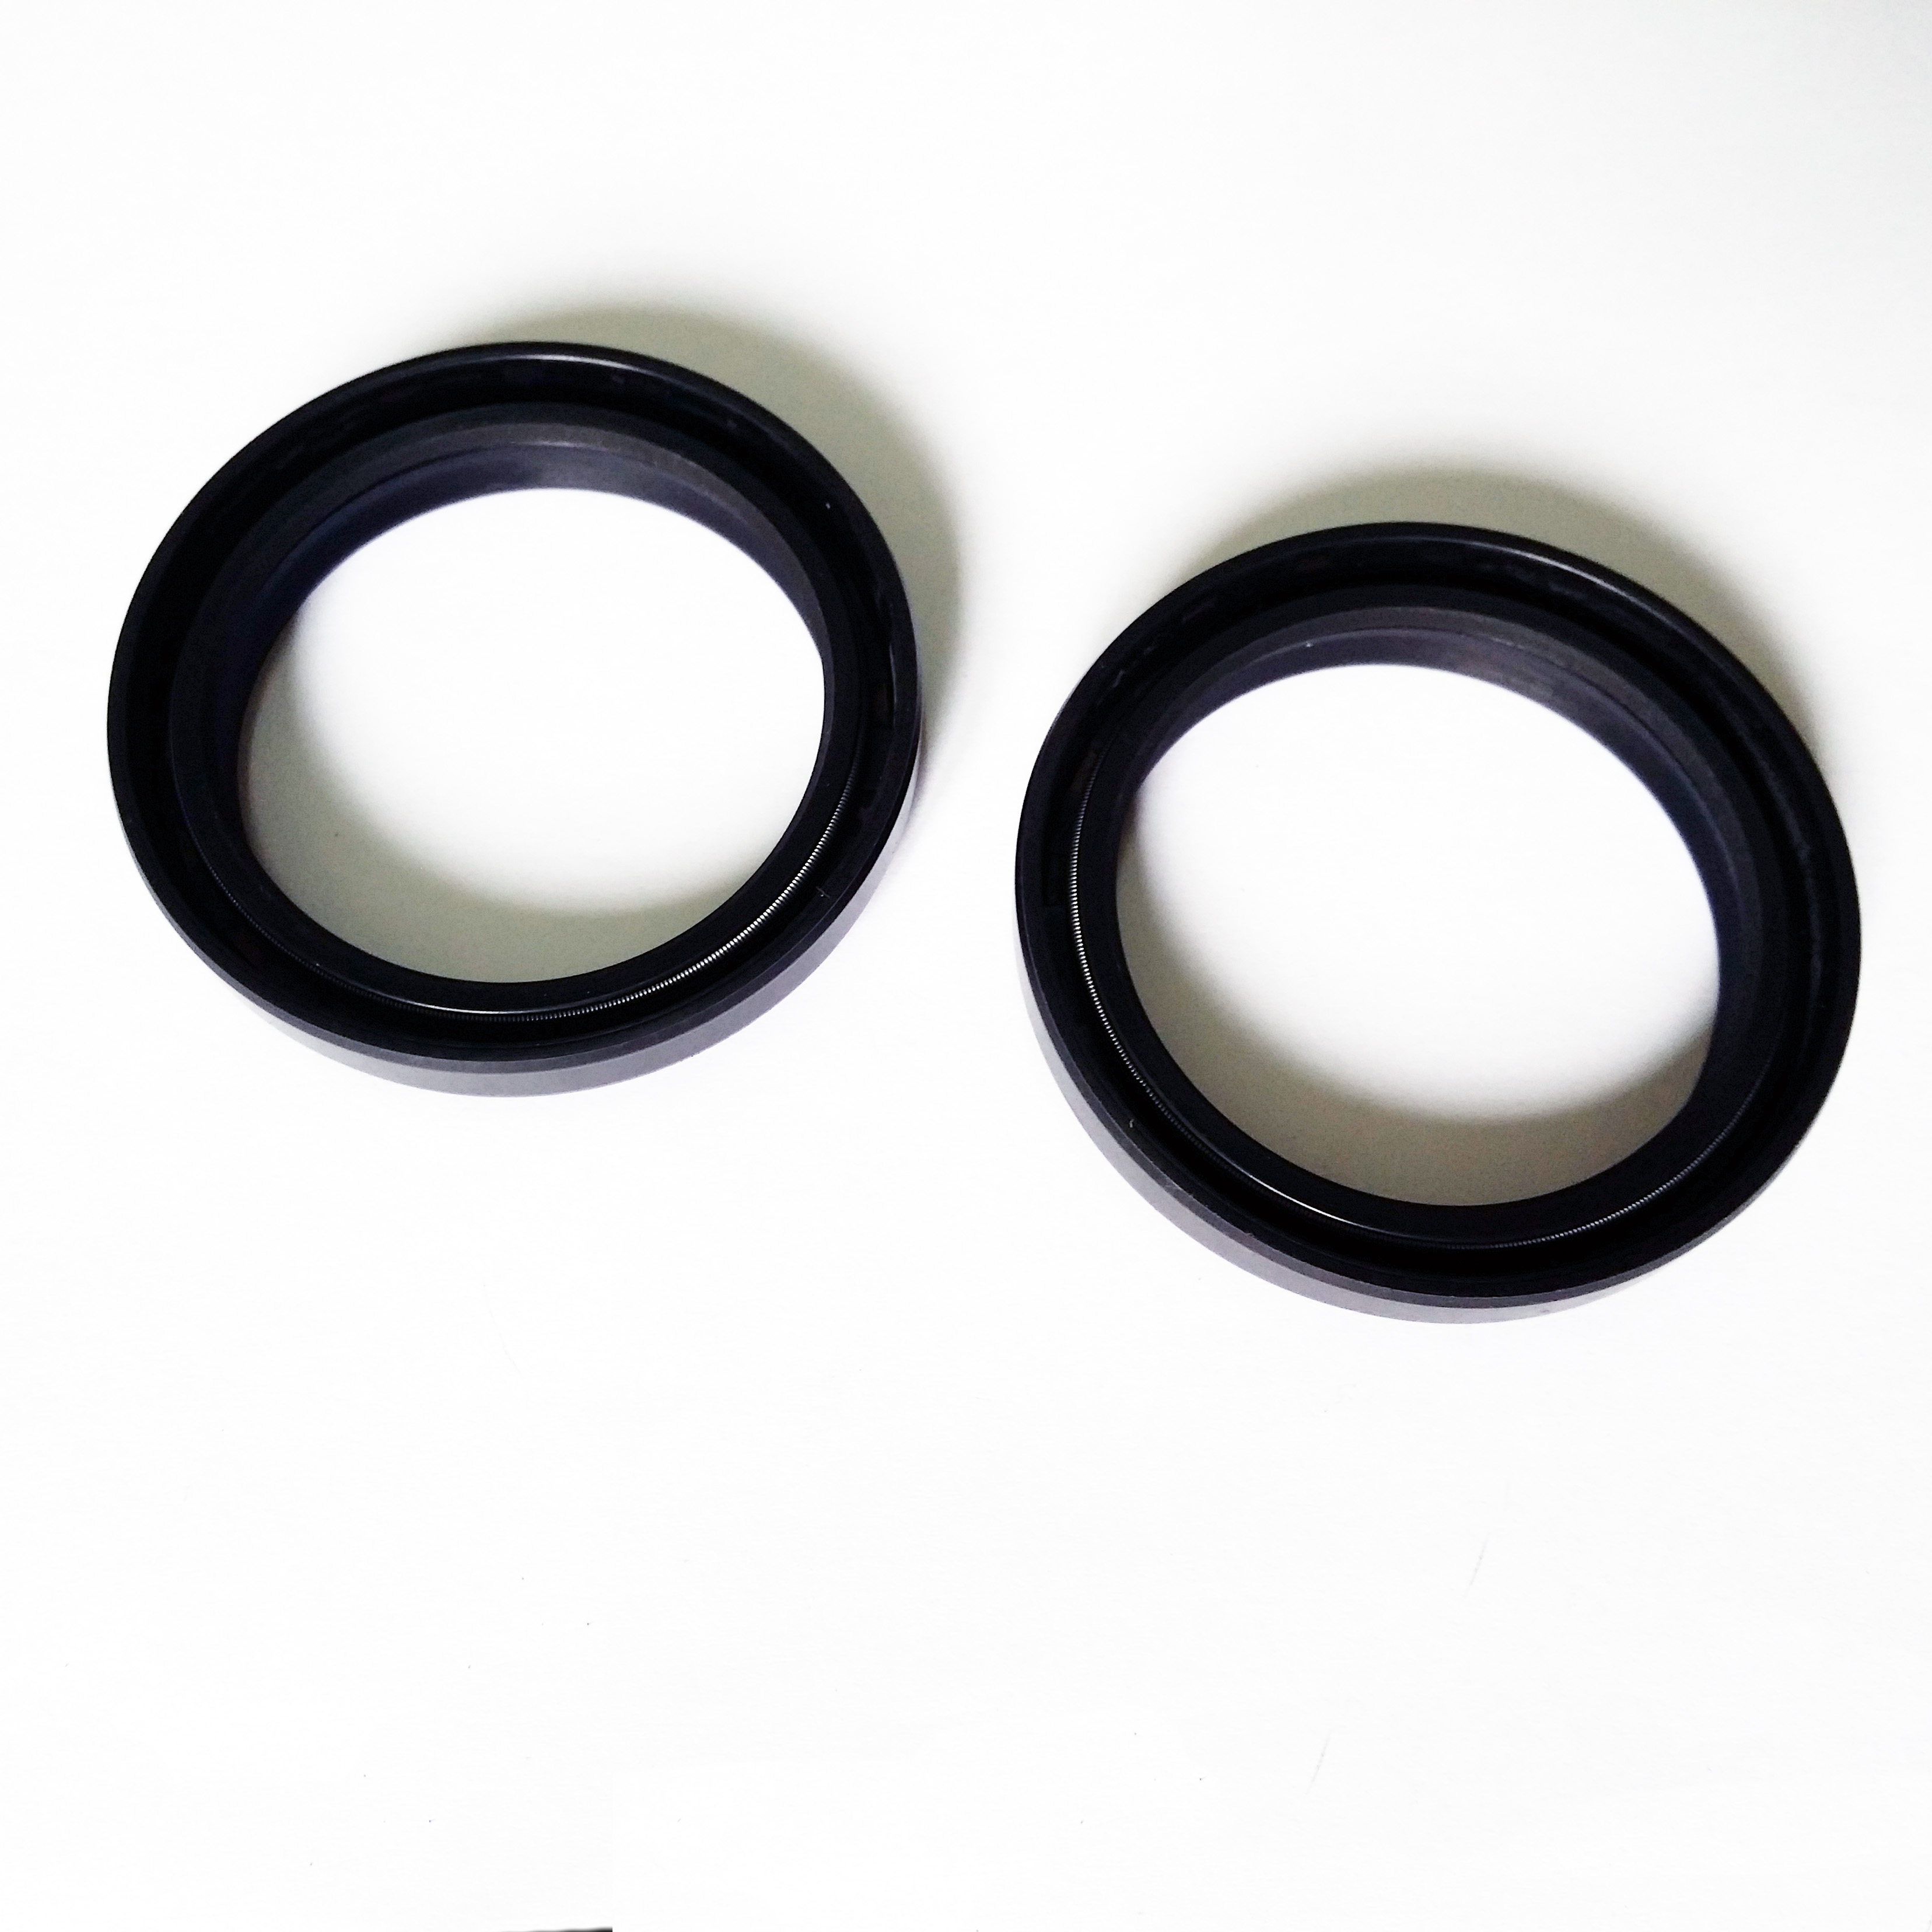 K-Tech Ducati ST4 2001-2005 NOK Front Fork Oil Seals 43x54x11mm